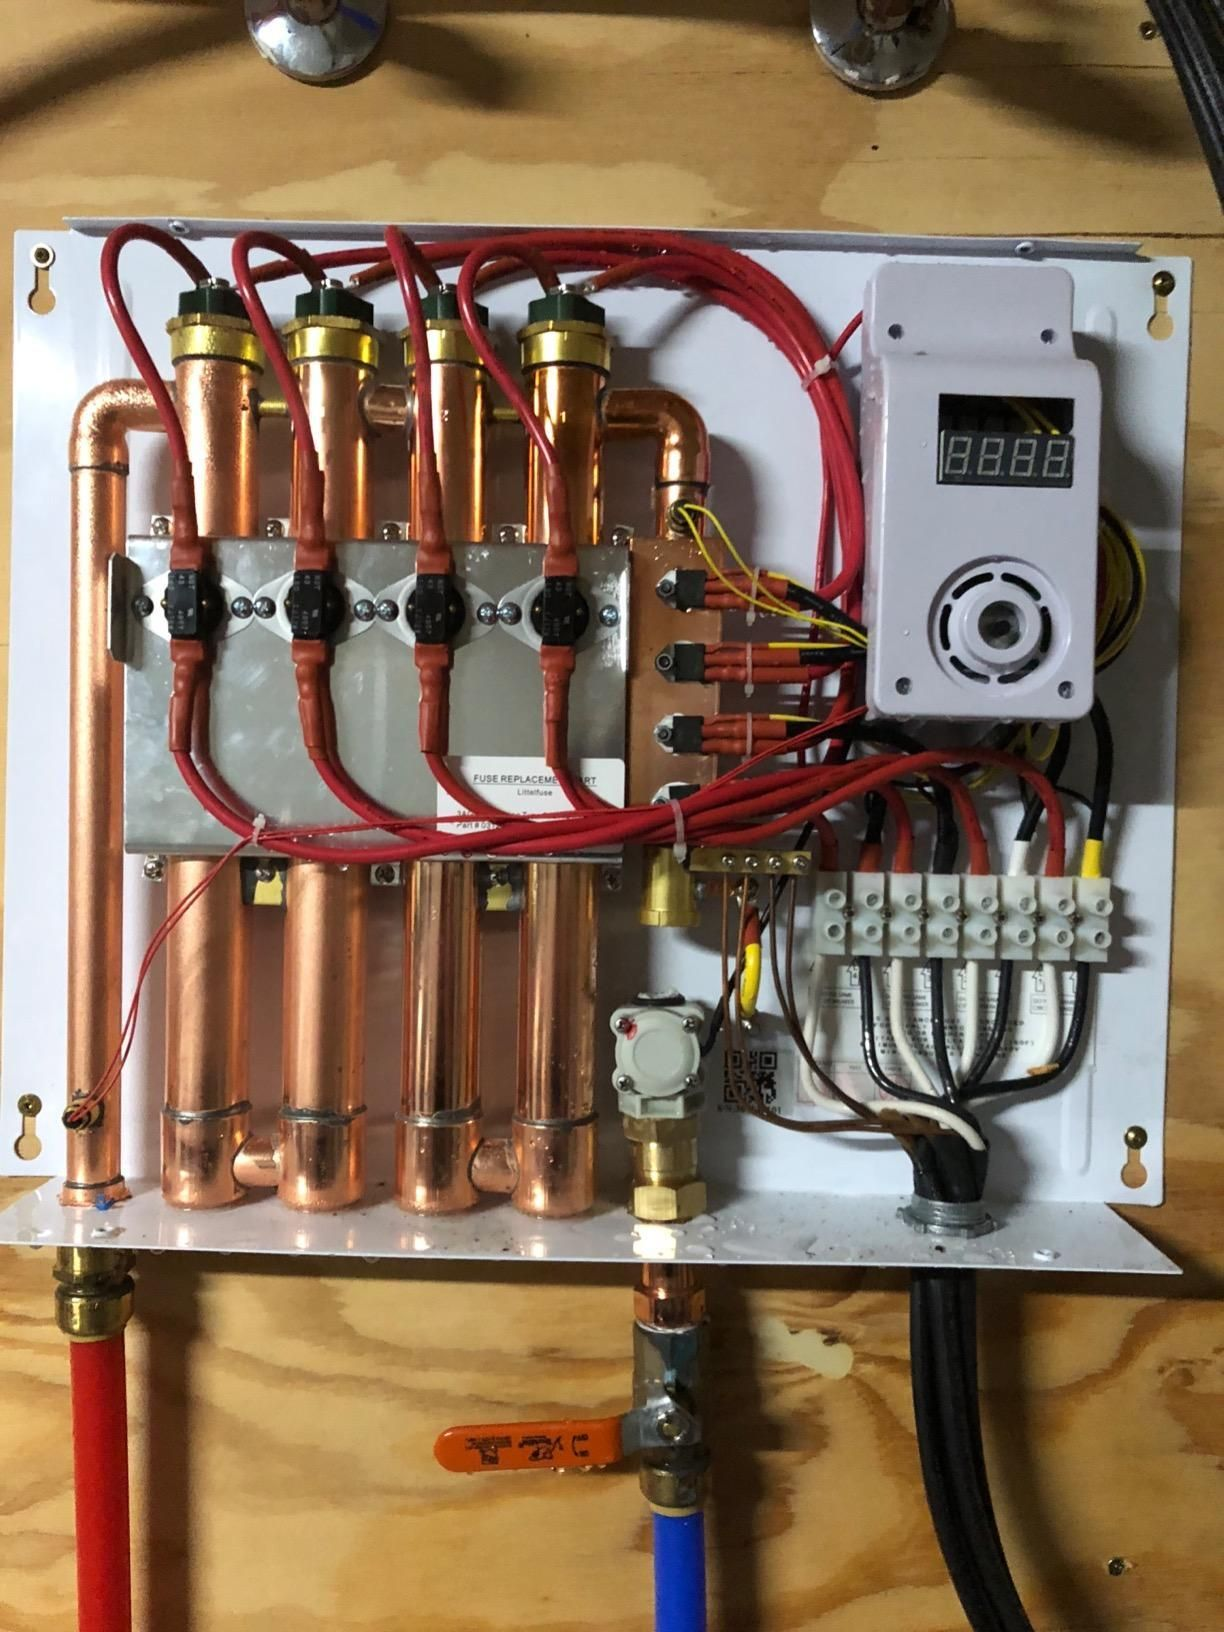 Best Electric Tankless Water Heater Reviews In 2020 Tankless Water Heater Water Heating Systems Water Heater